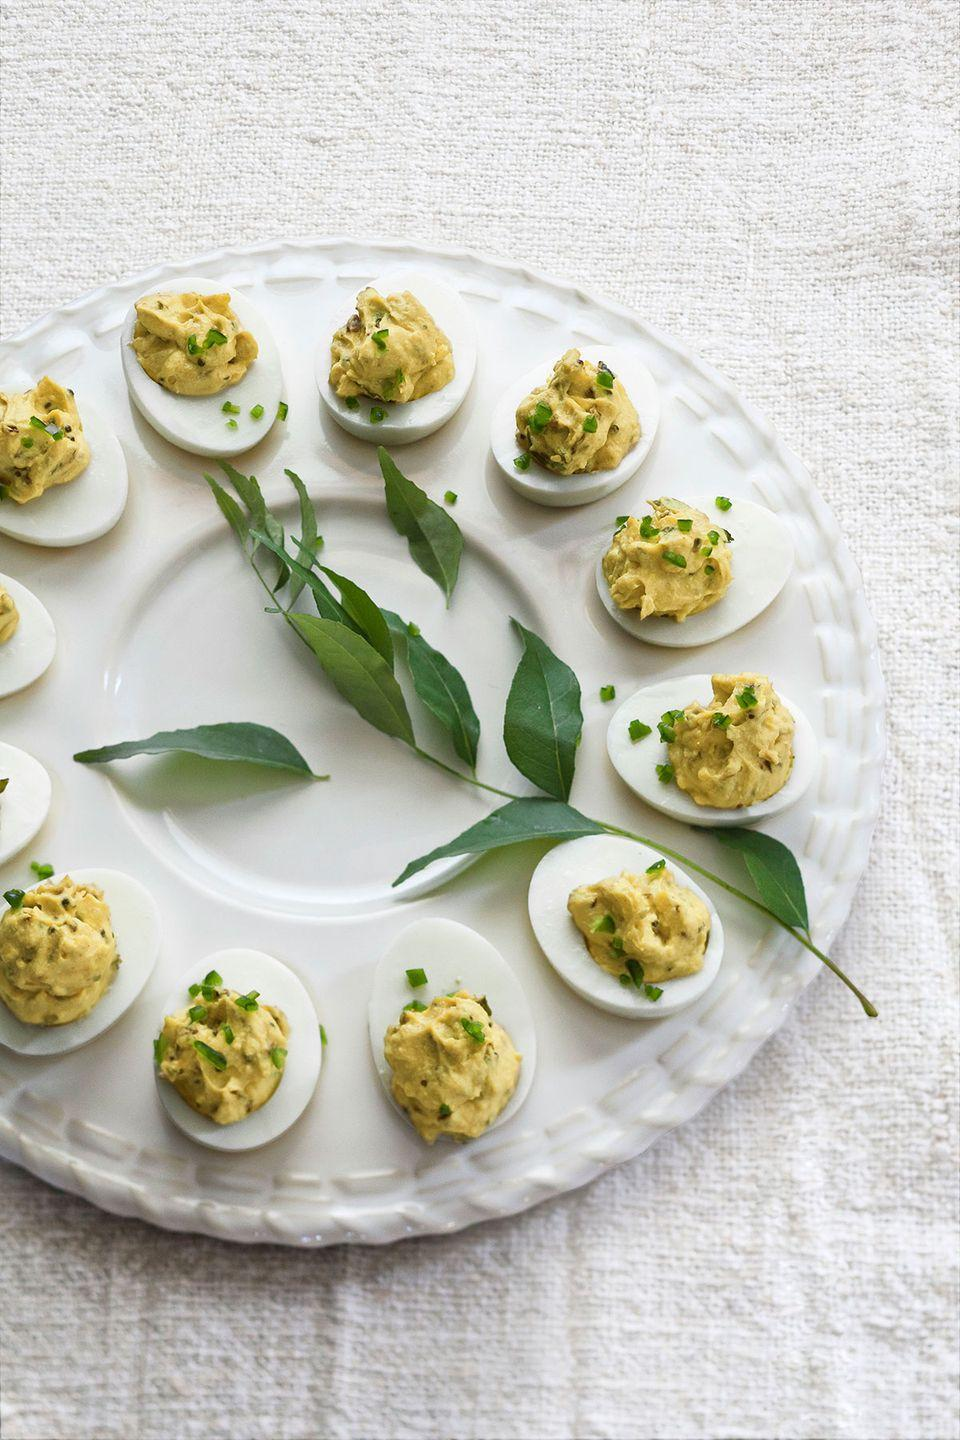 "<p>If you love Indian food and curry, then you won't be able to resist these deviled eggs with an extra kick.</p><p><strong><a href=""https://www.countryliving.com/food-drinks/recipes/a4205/deviled-eggs-cilantro-jalapenos-curry-recipe-clv0712/"" rel=""nofollow noopener"" target=""_blank"" data-ylk=""slk:Get the recipe"" class=""link rapid-noclick-resp"">Get the recipe</a>.</strong></p>"